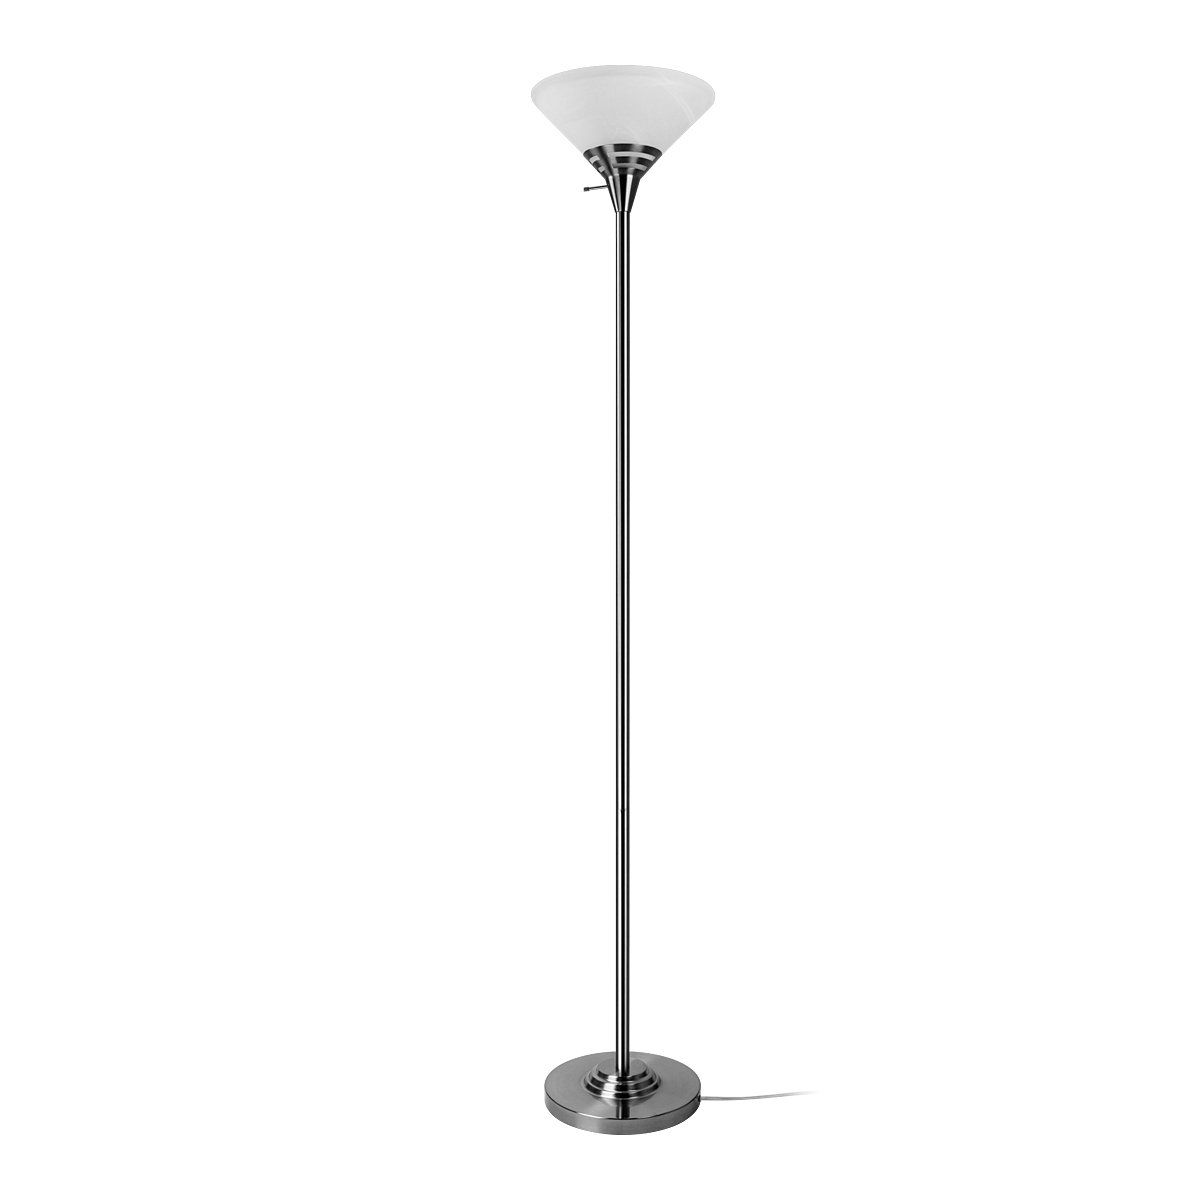 Oneach modern torchiere floor lamp 150 watt light 705 inch with oneach modern torchiere floor lamp 150 watt light 705 inch with frosted white alabaster mozeypictures Gallery